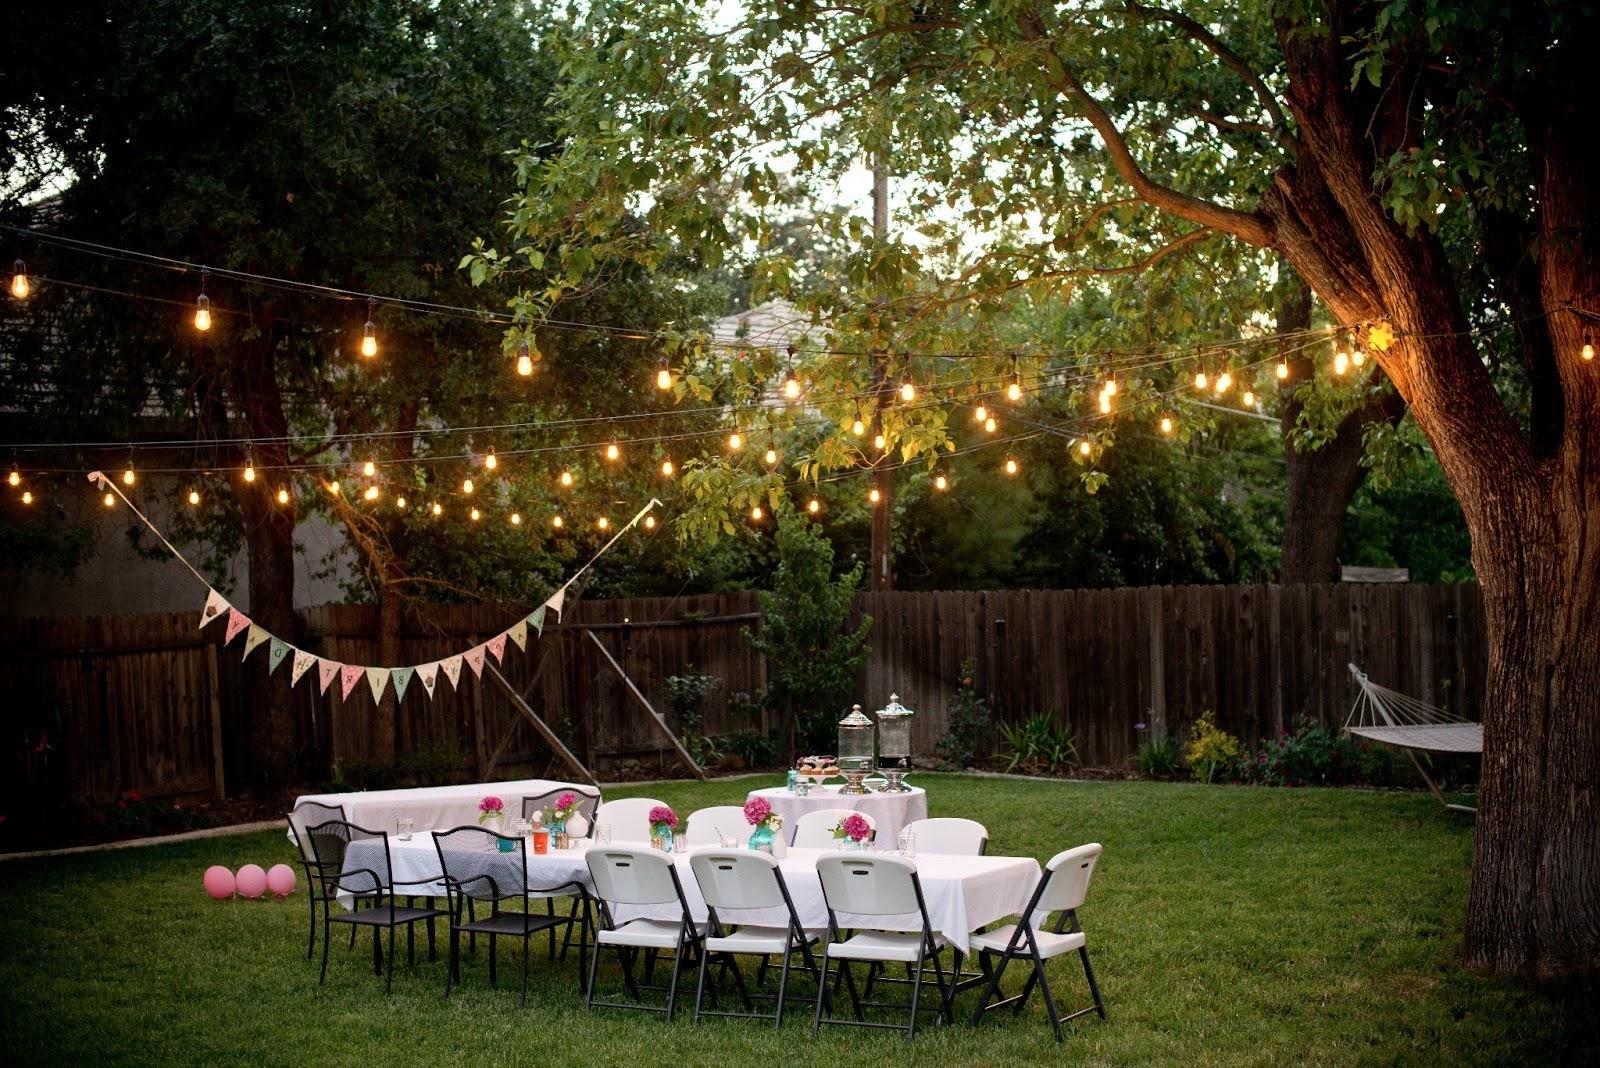 2018 Outdoor Lanterns For Parties In Cheap Outdoor Lights String Net Party Lighting Ideas For Weddings (View 1 of 20)